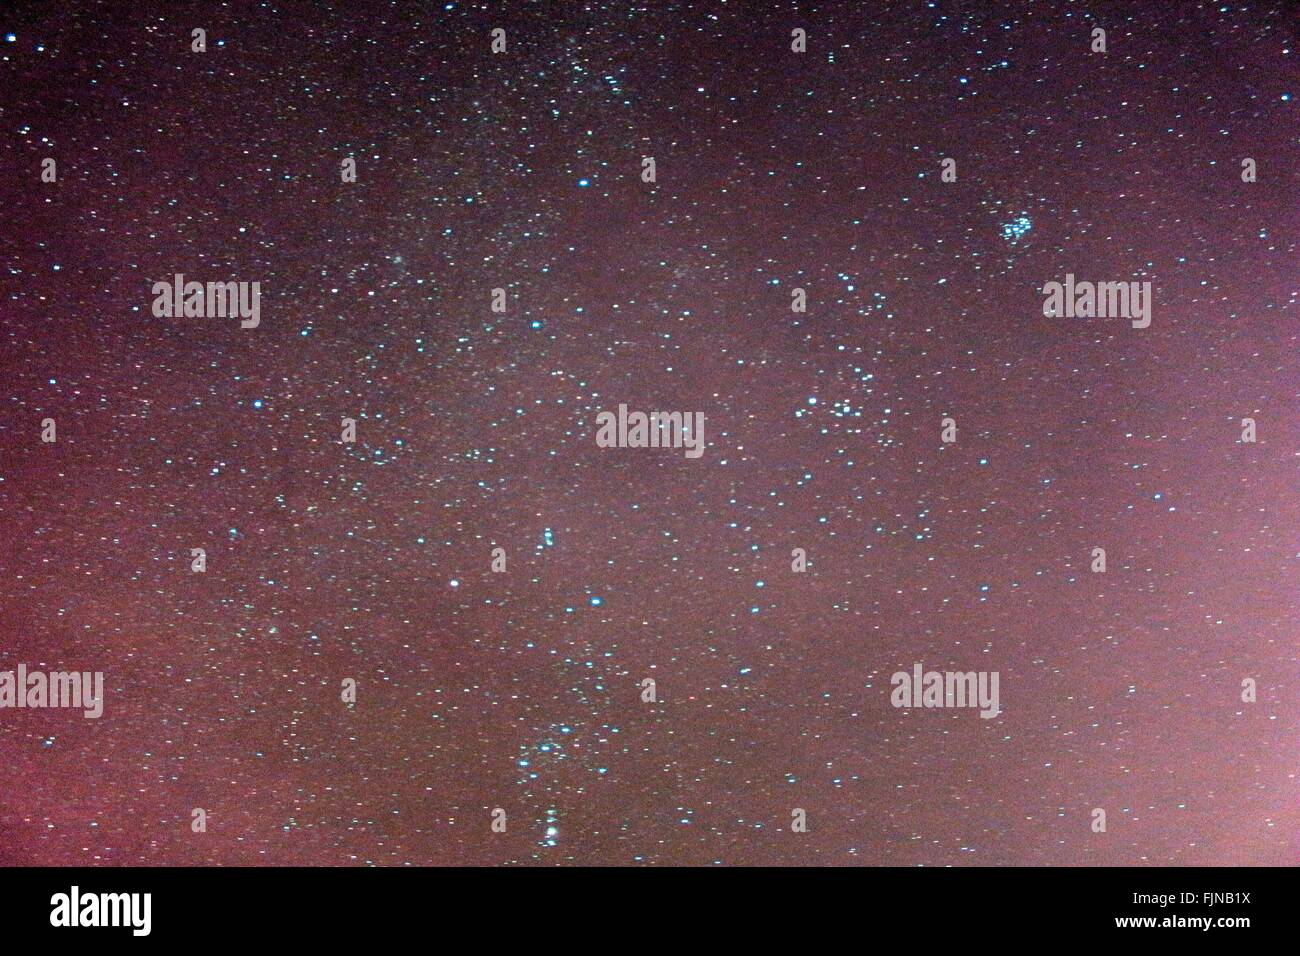 Stars In The Sky At Night - Stock Image